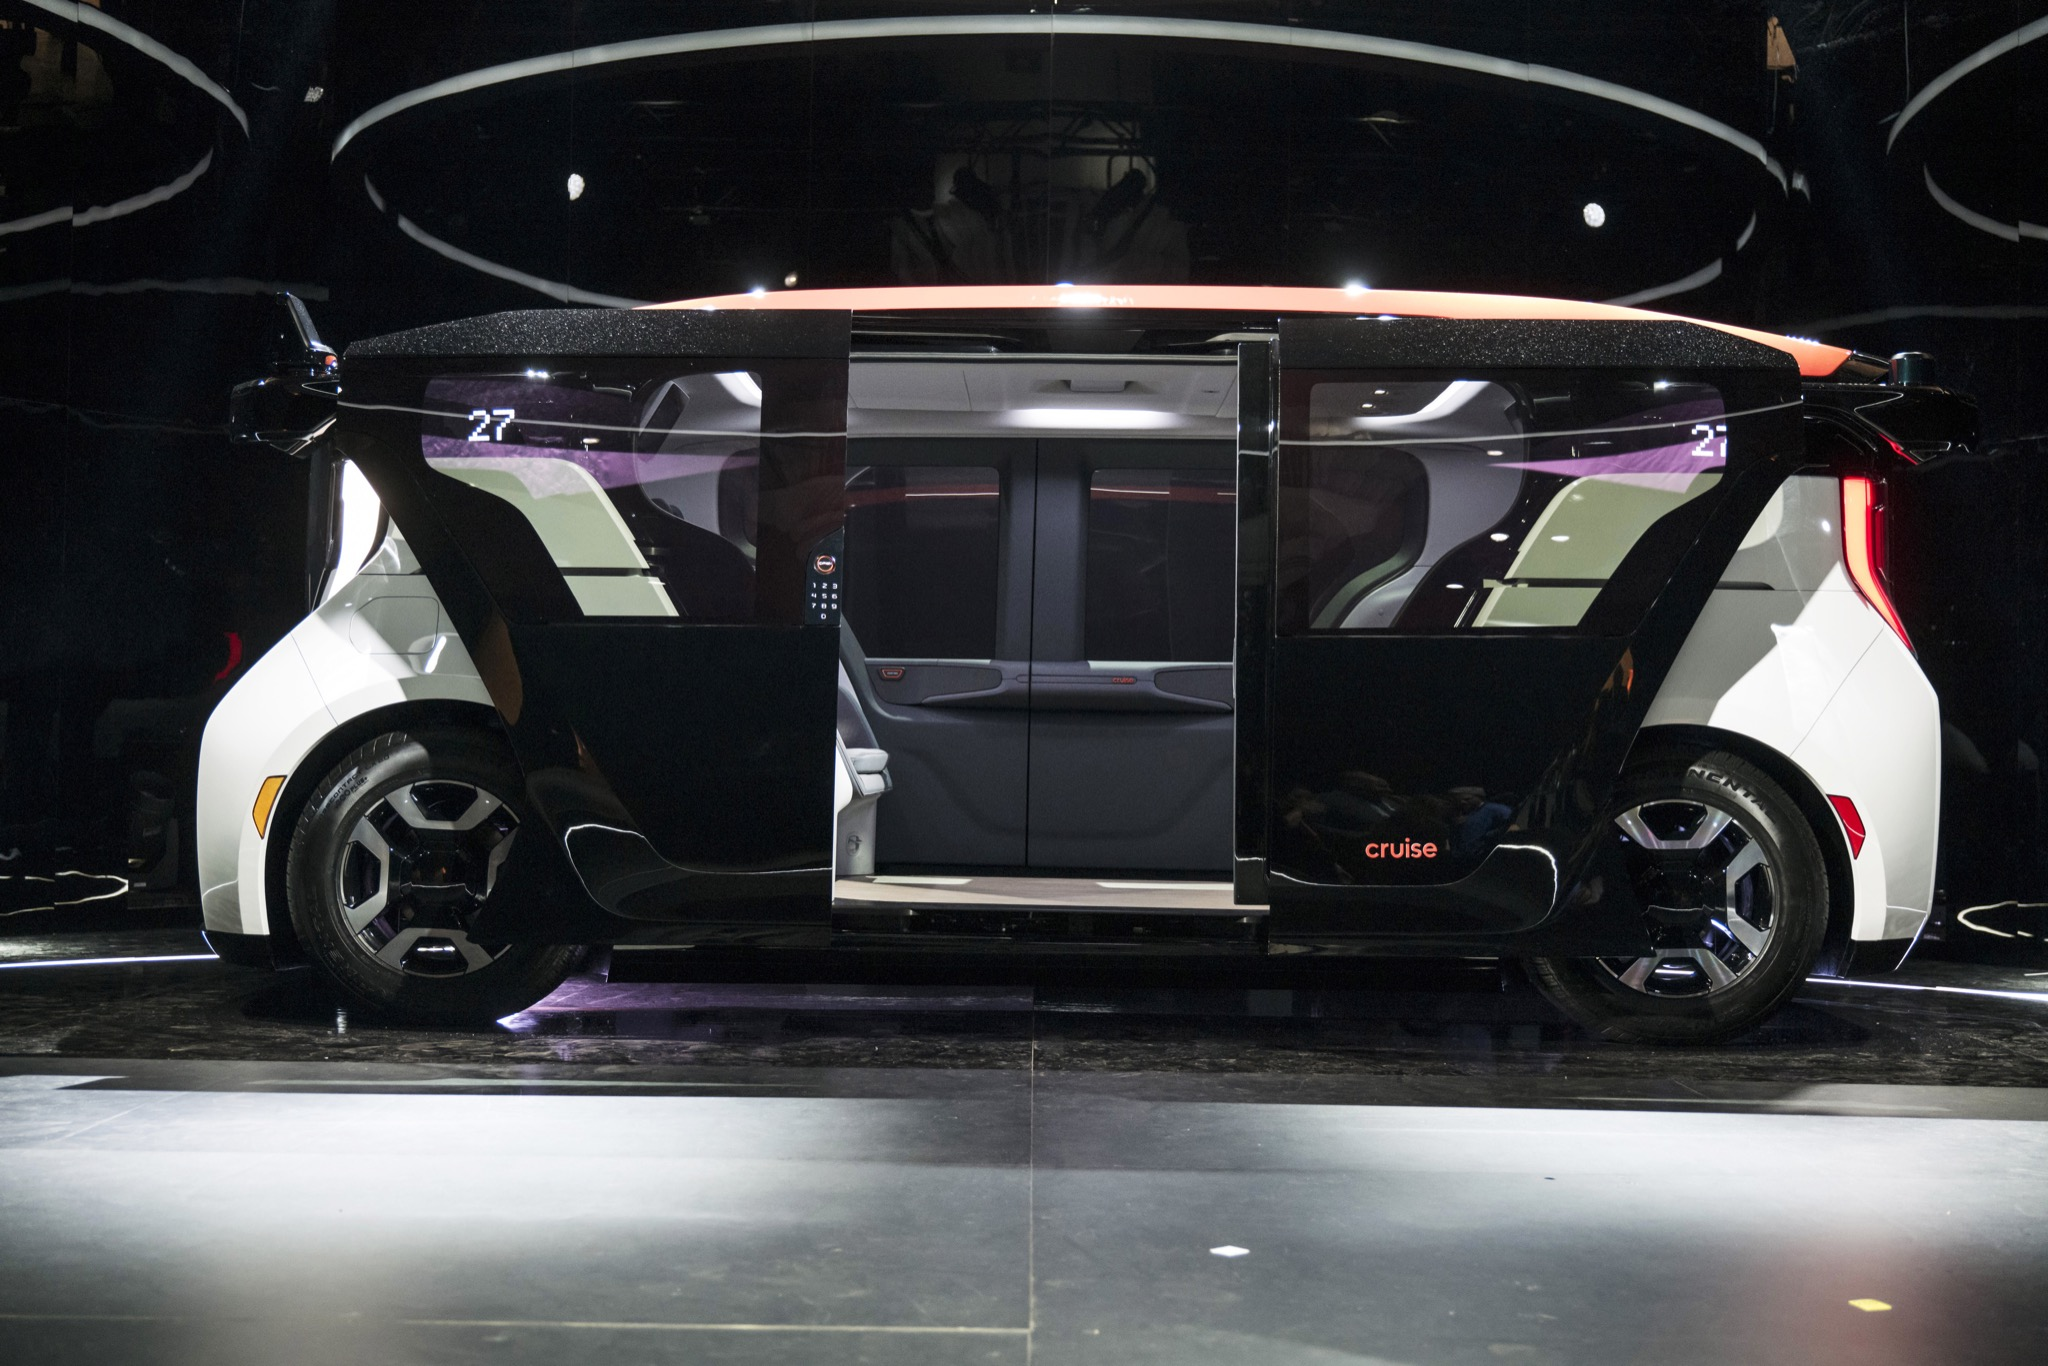 Cruise, a self-driving startup owned mostly by GM and Honda, have developed the Cruise Origin, a prototype self-driving vehicles without traditional steering controls.